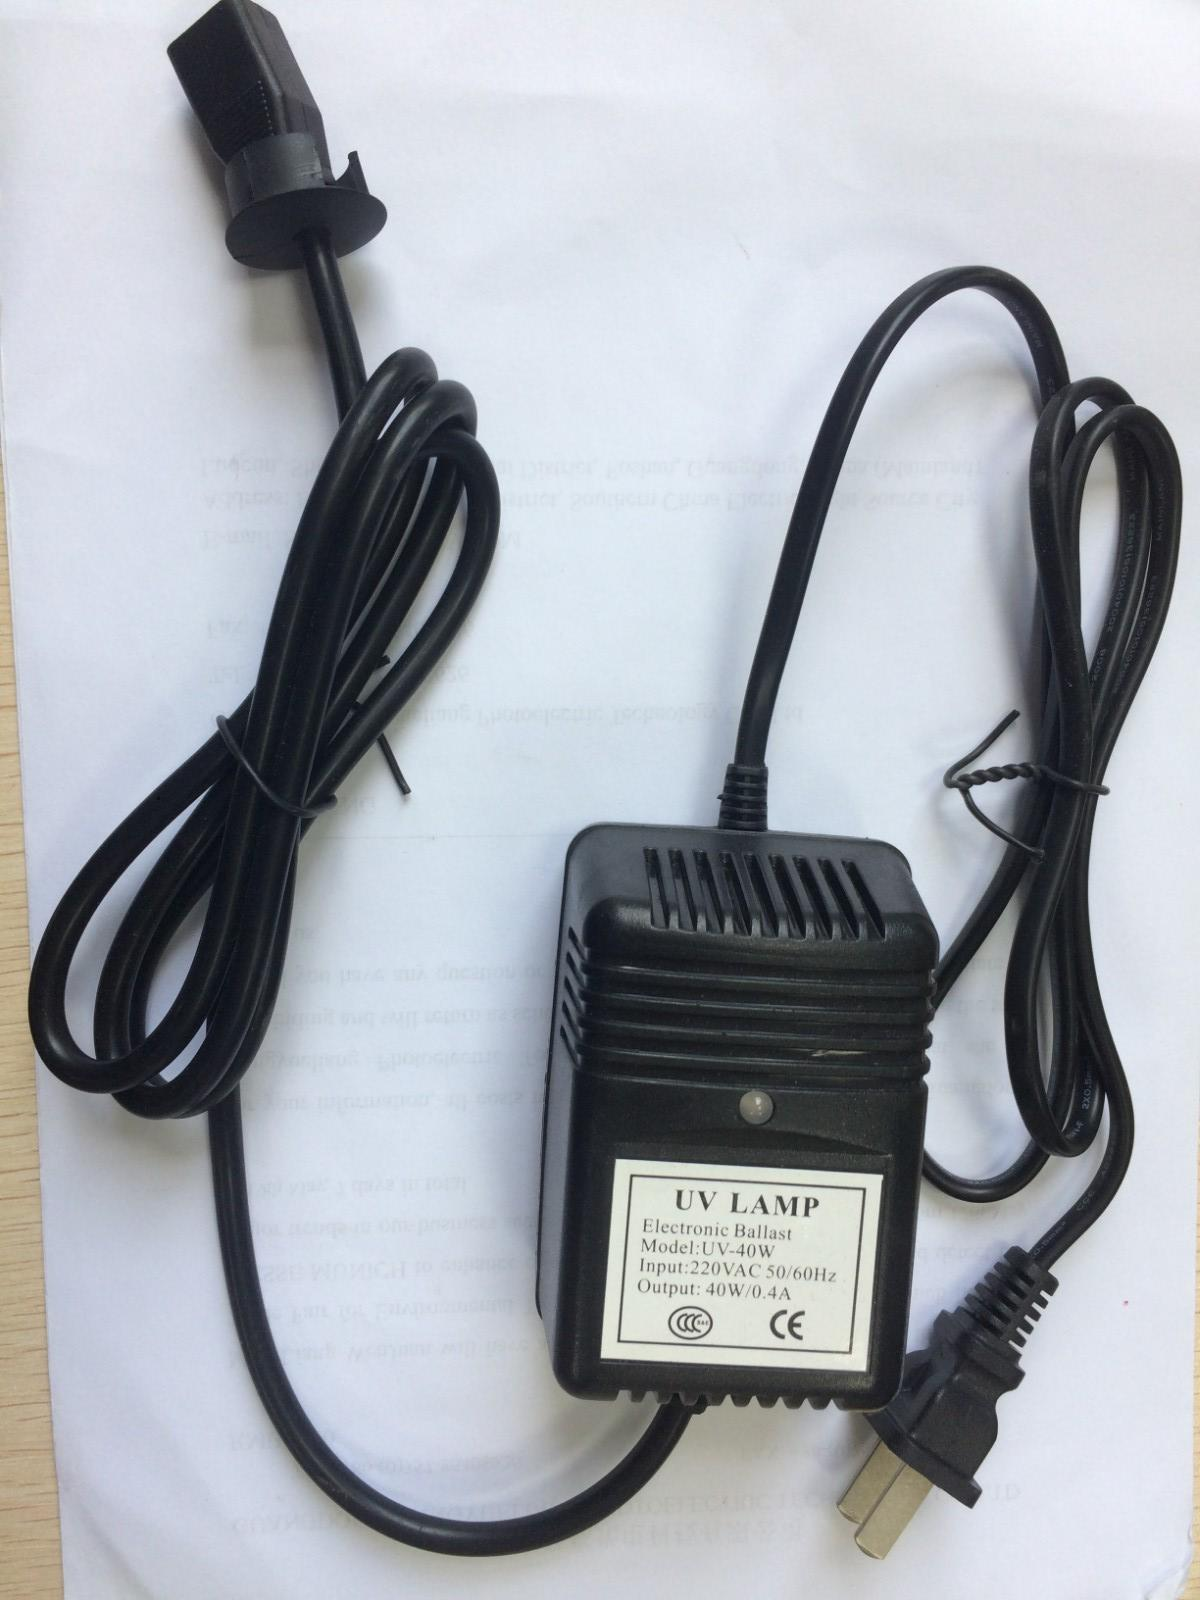 LiangYueLiang protective uv light ballast supply for domestic